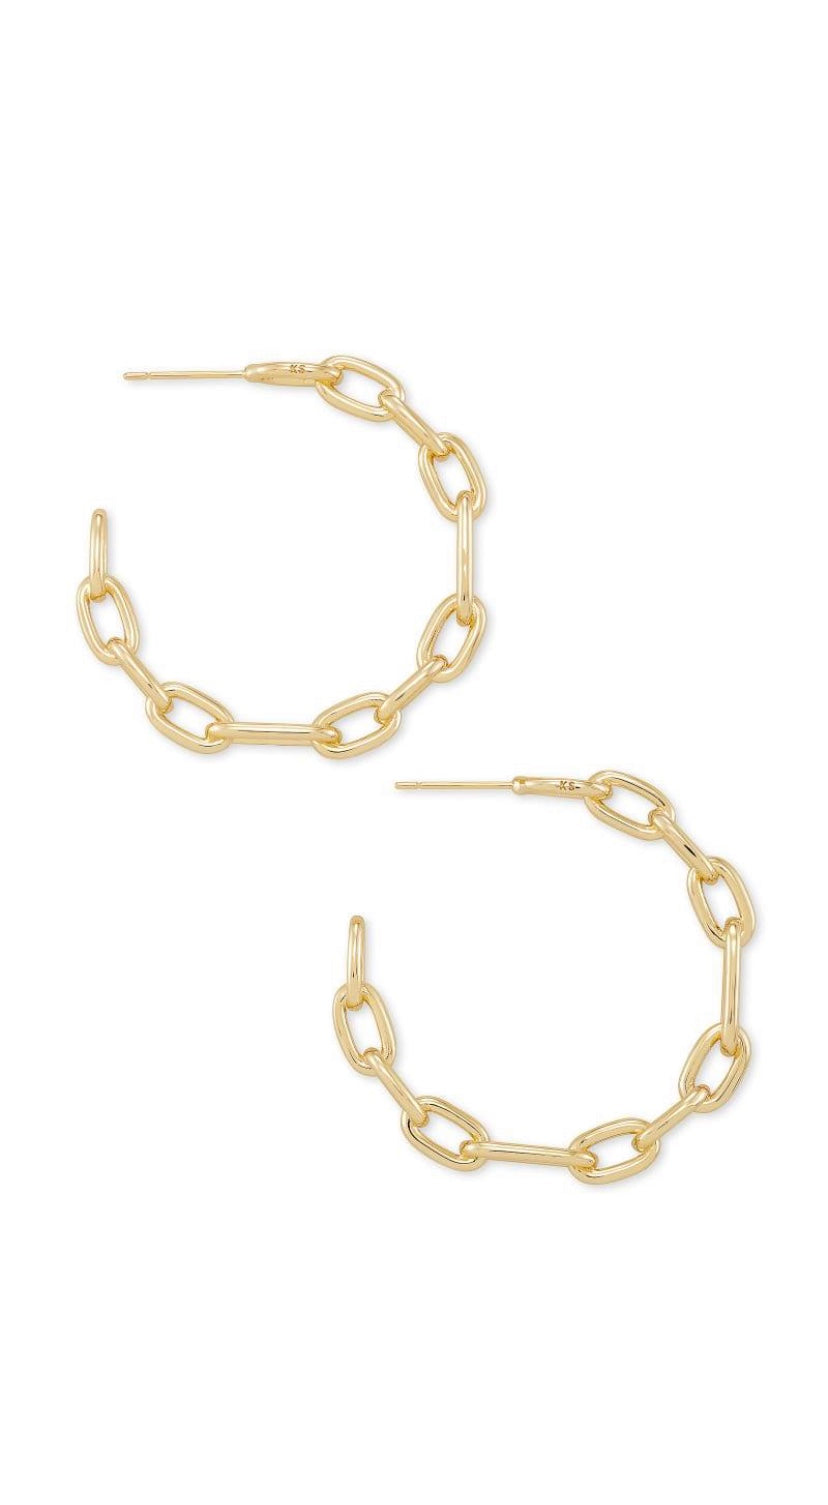 Kendra Scott Ryder Hoop Earrings